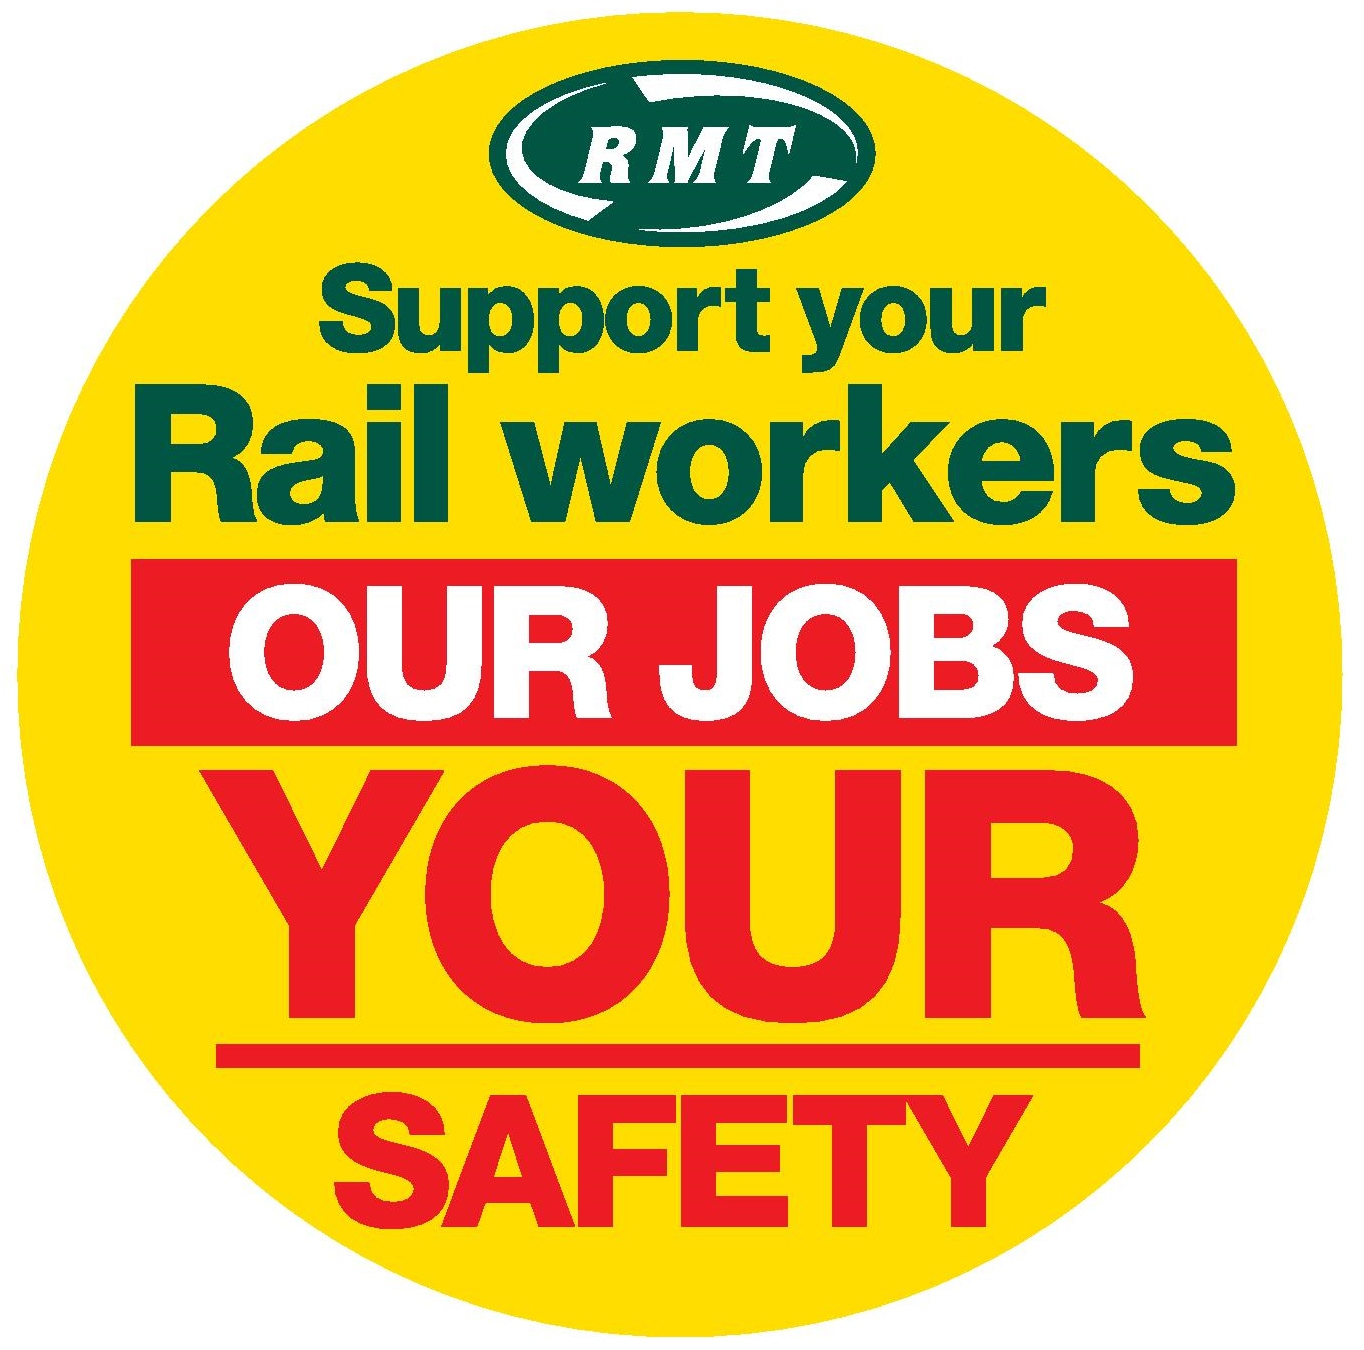 Support Your Rail Workers